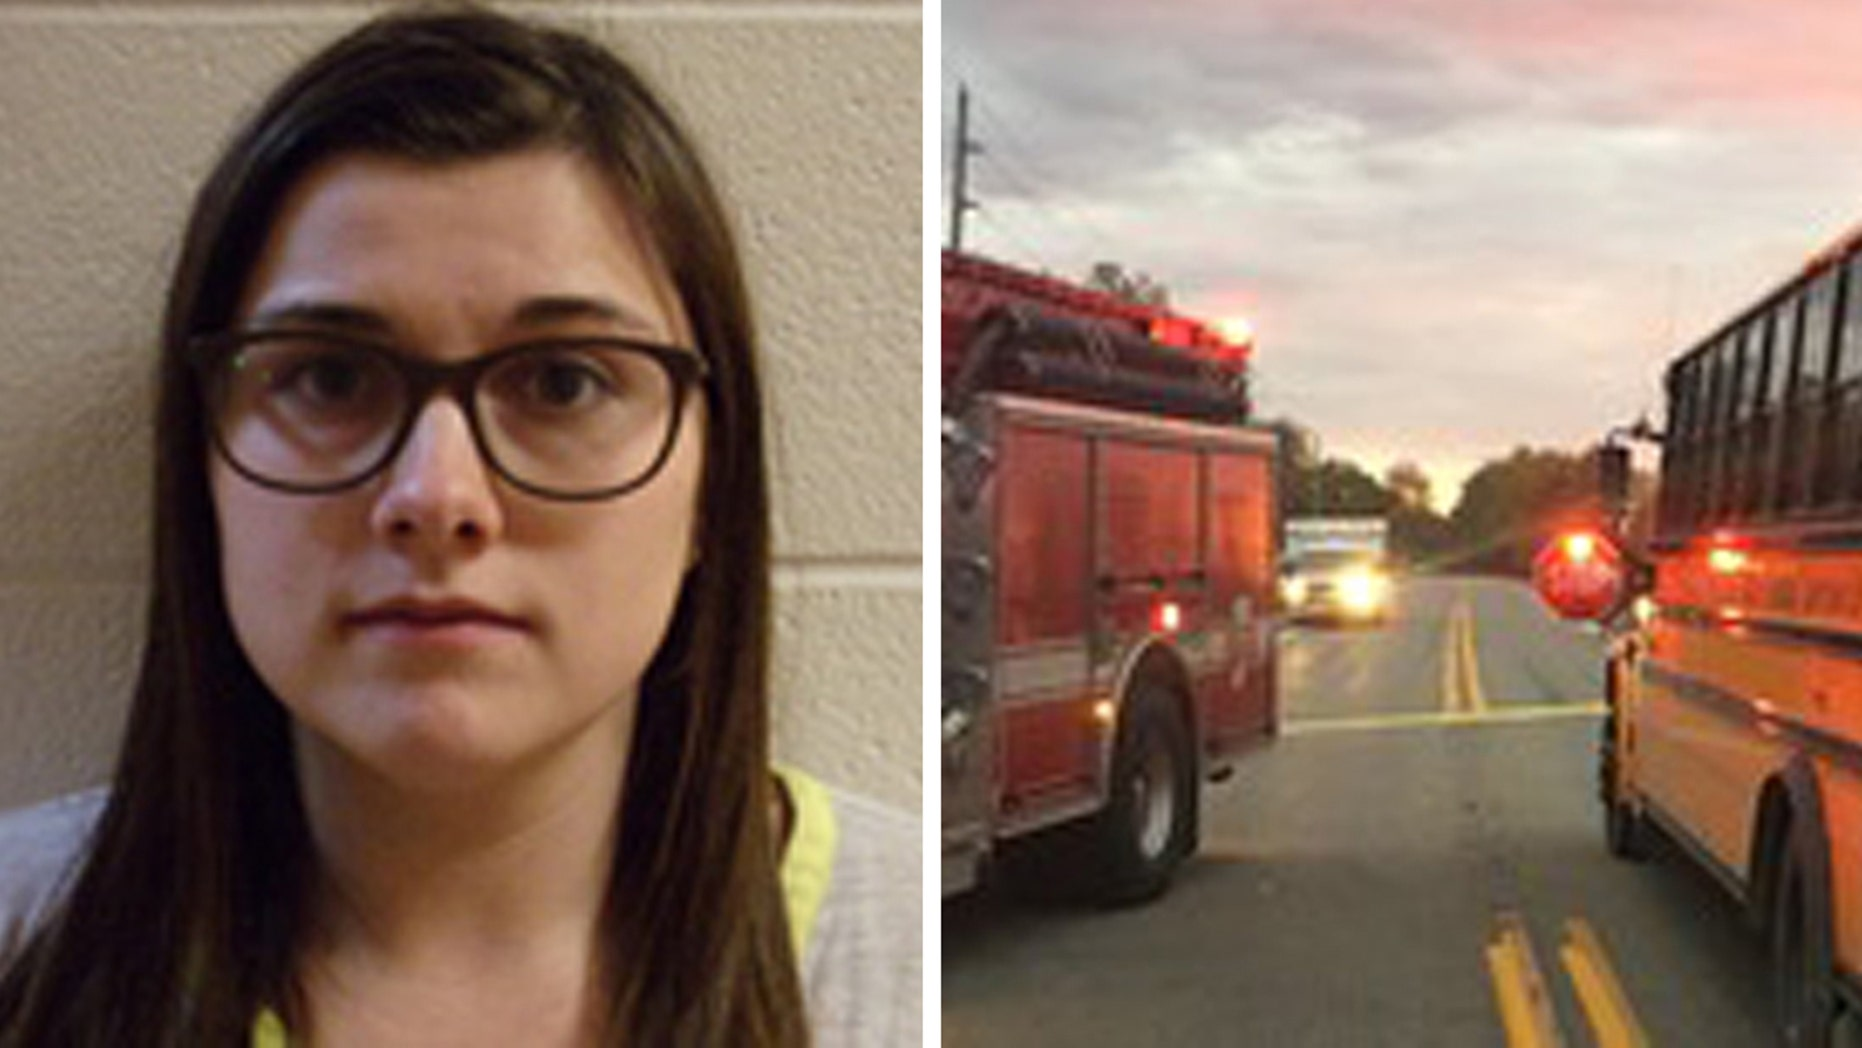 Three children were struck by a vehicle and killed at an Indiana school bus stop on Tuesday, and the suspected driver, Alyssa L. Shepherd, was arrested, state police said.